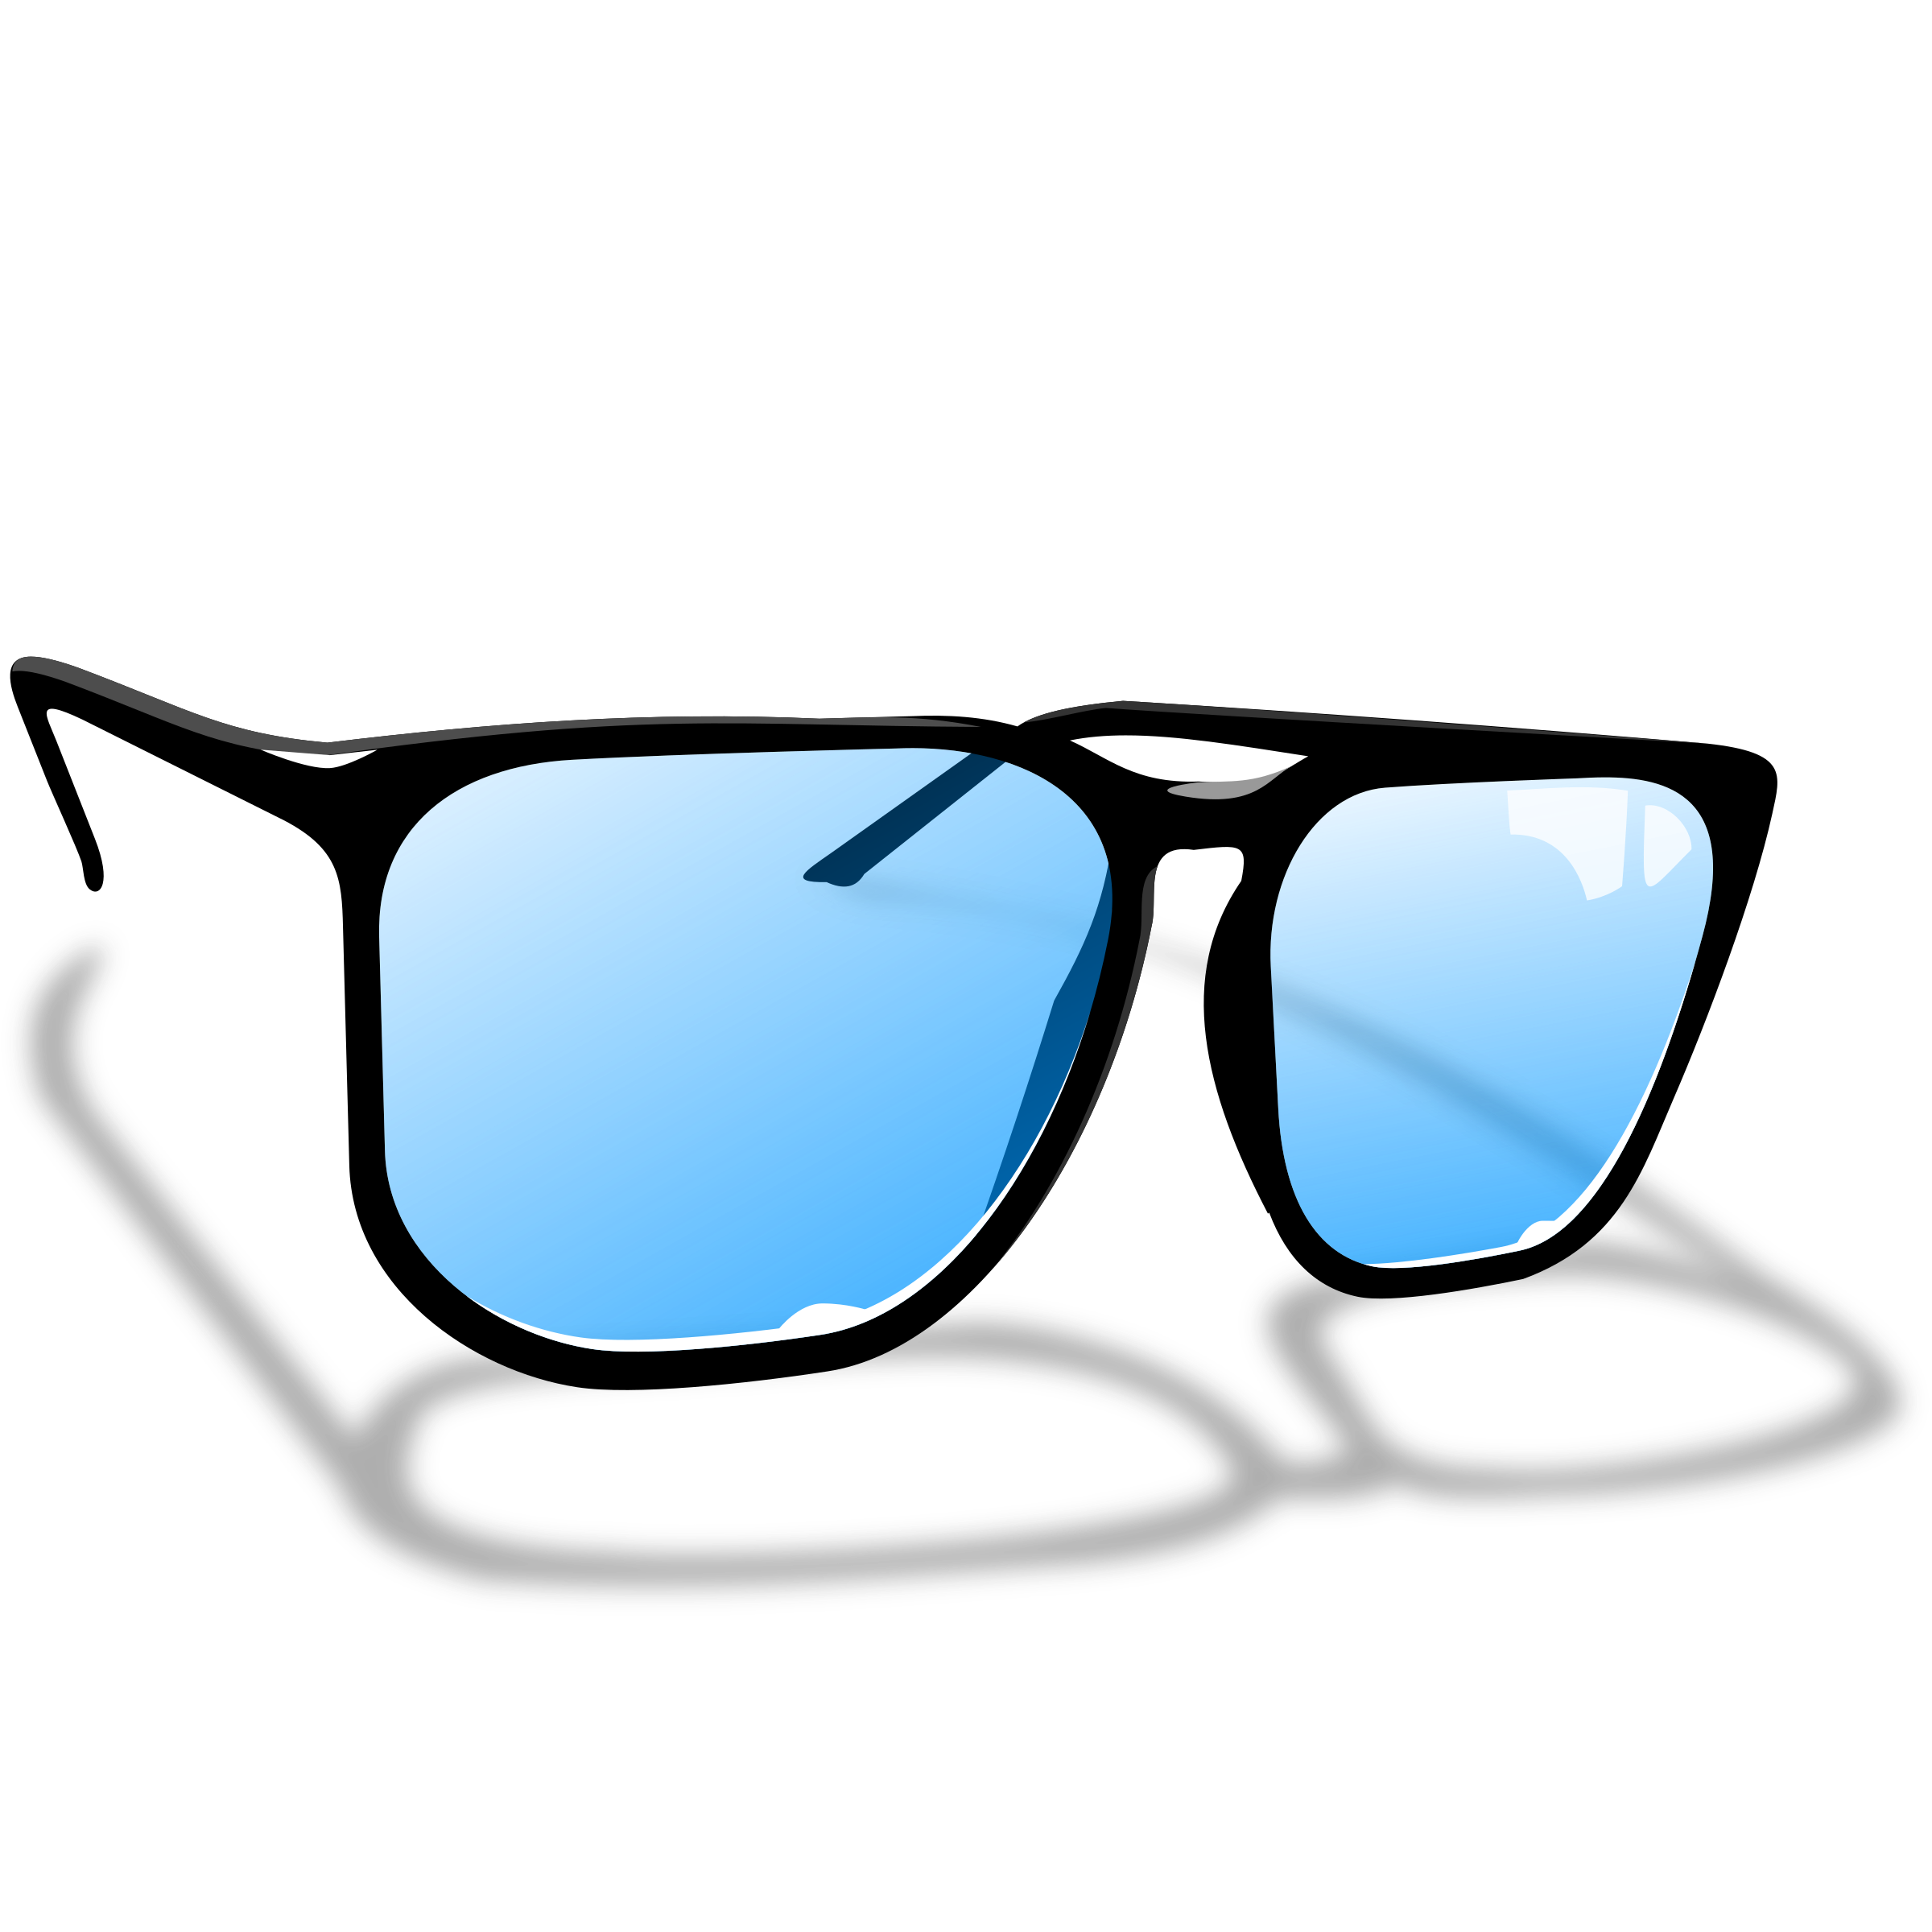 Sunglasses clipart small.